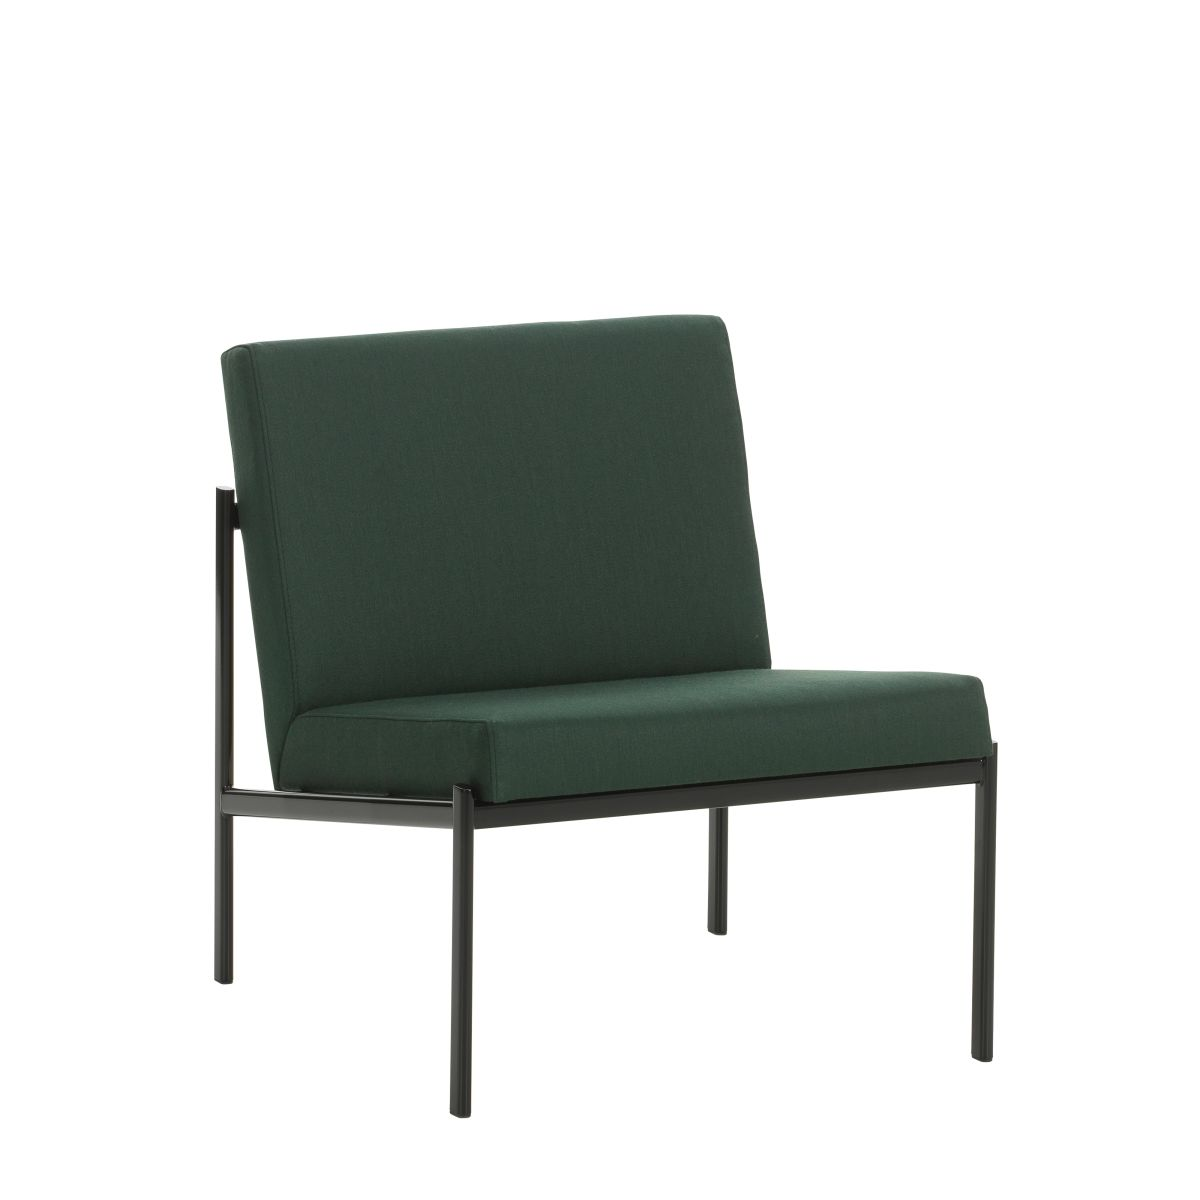 Kiki_Lounge_Chair